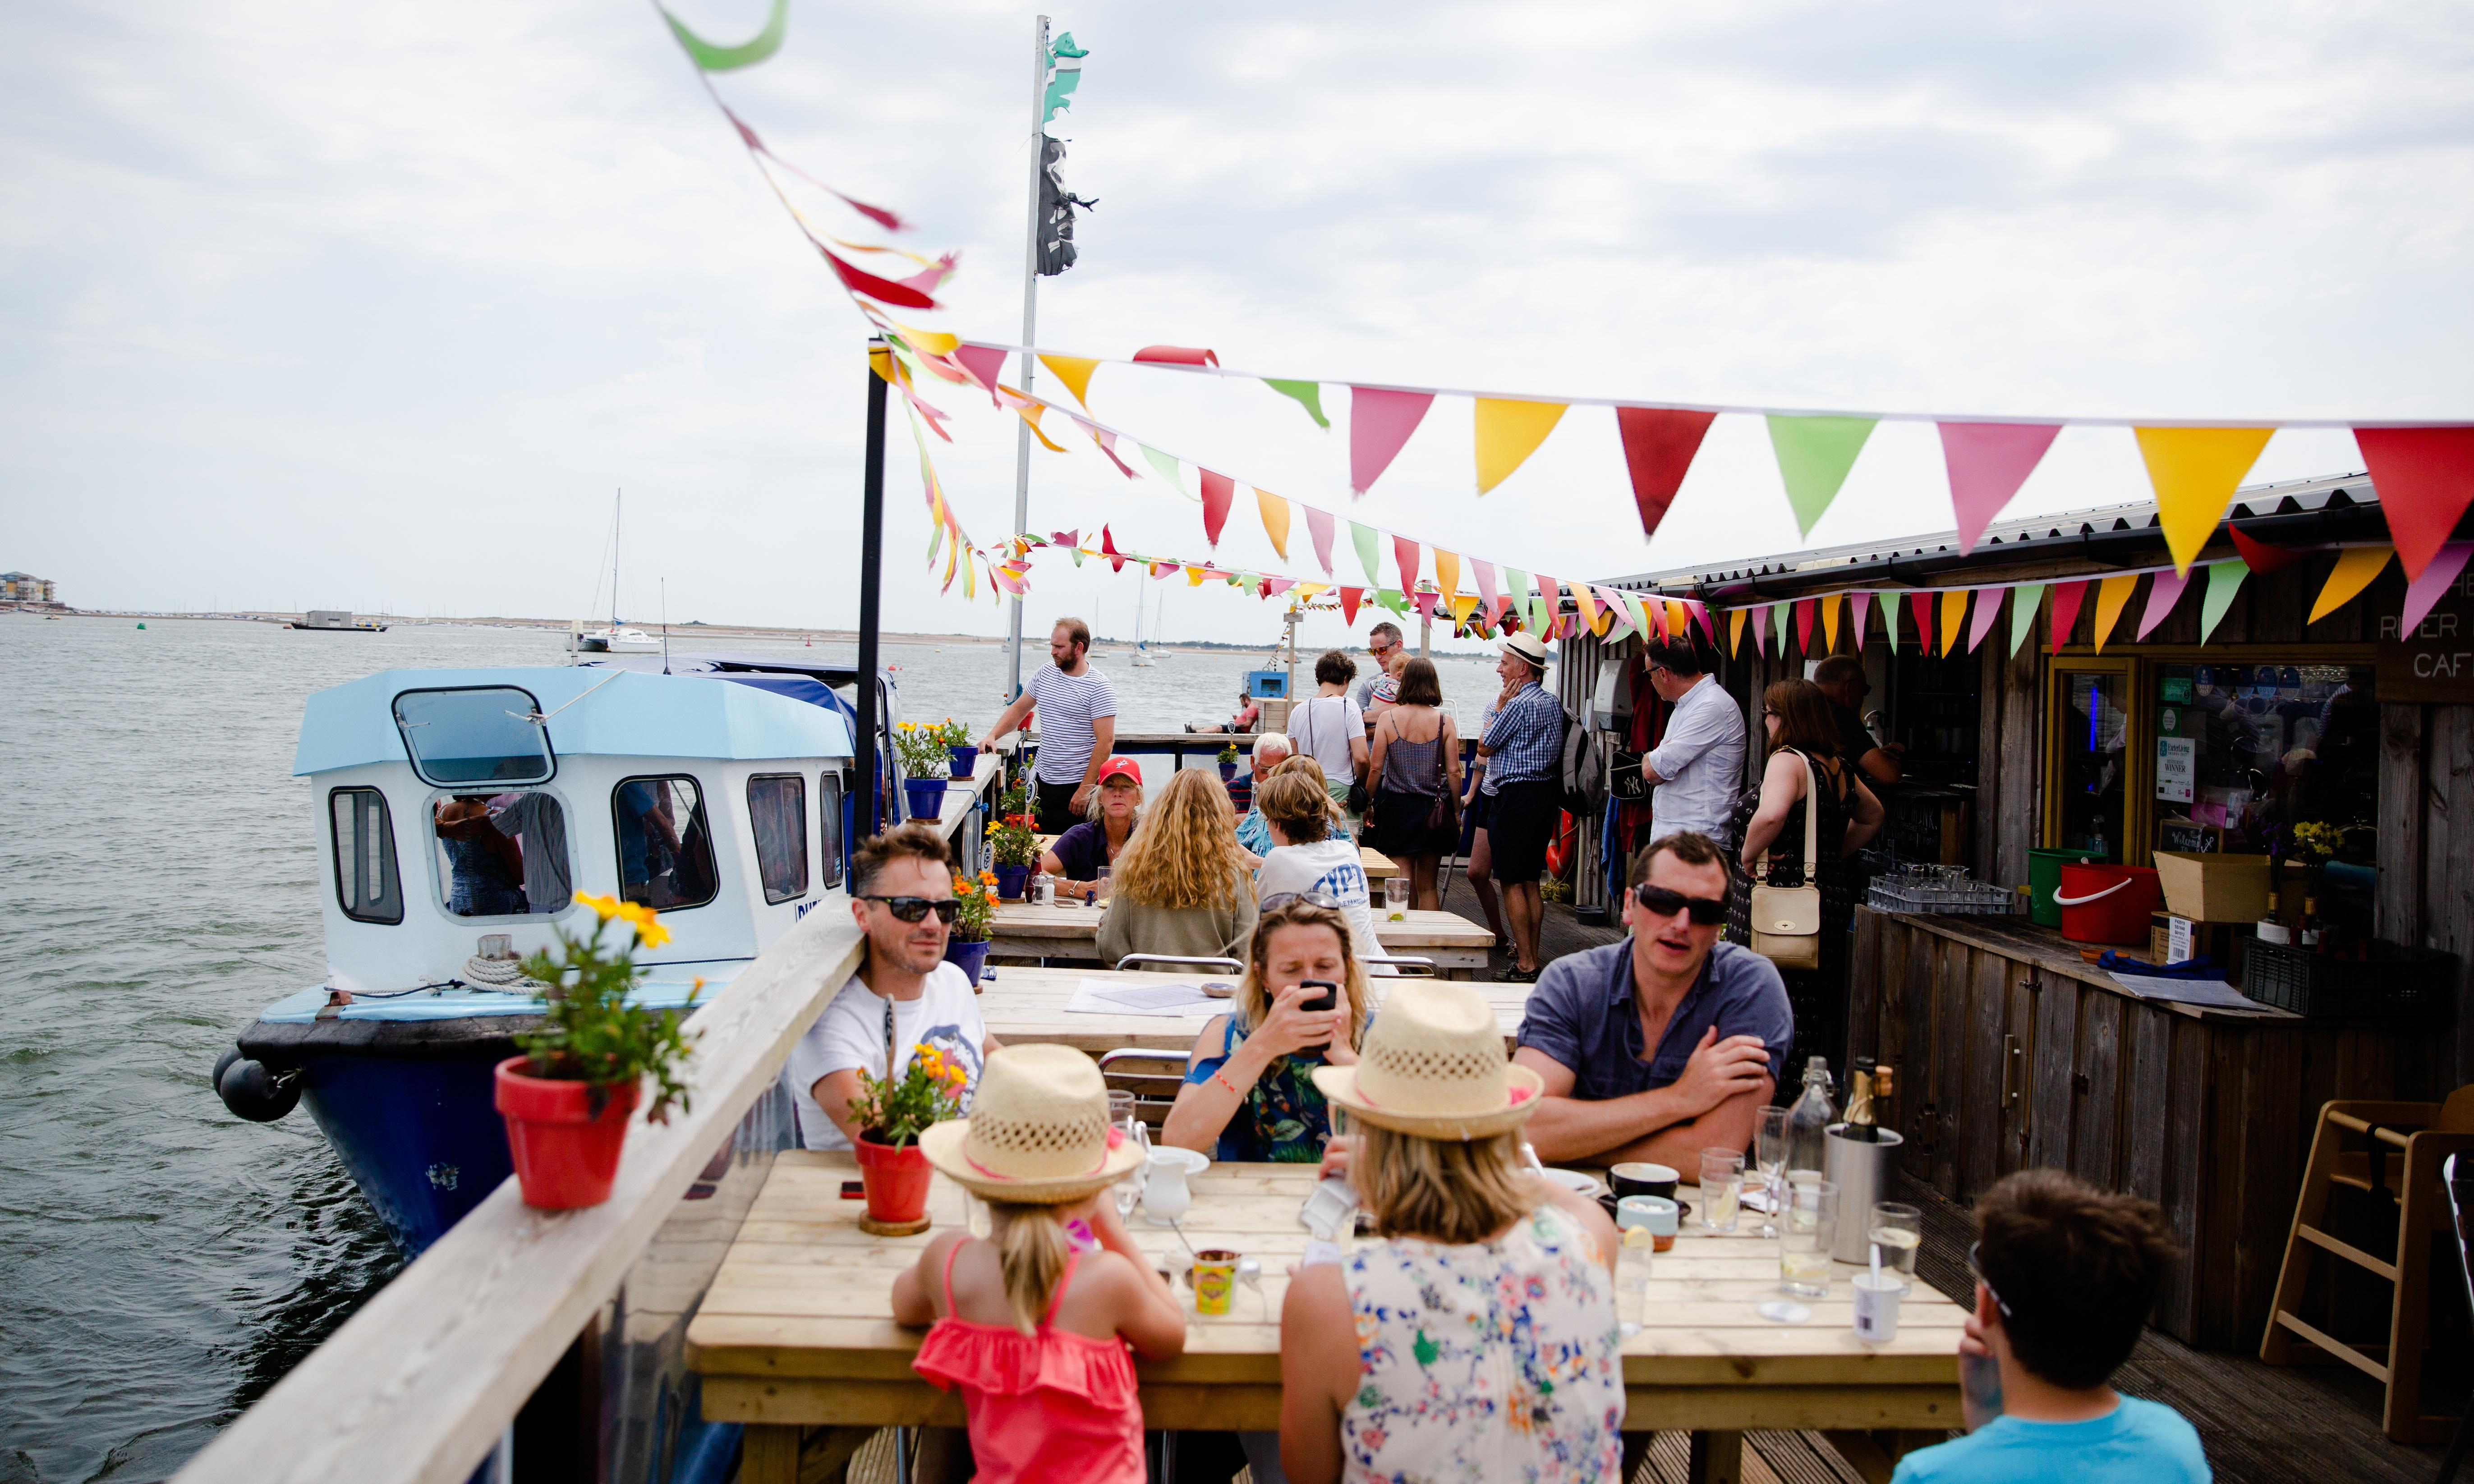 20 of the UK's best seaside cafes and restaurants: readers' travel tips